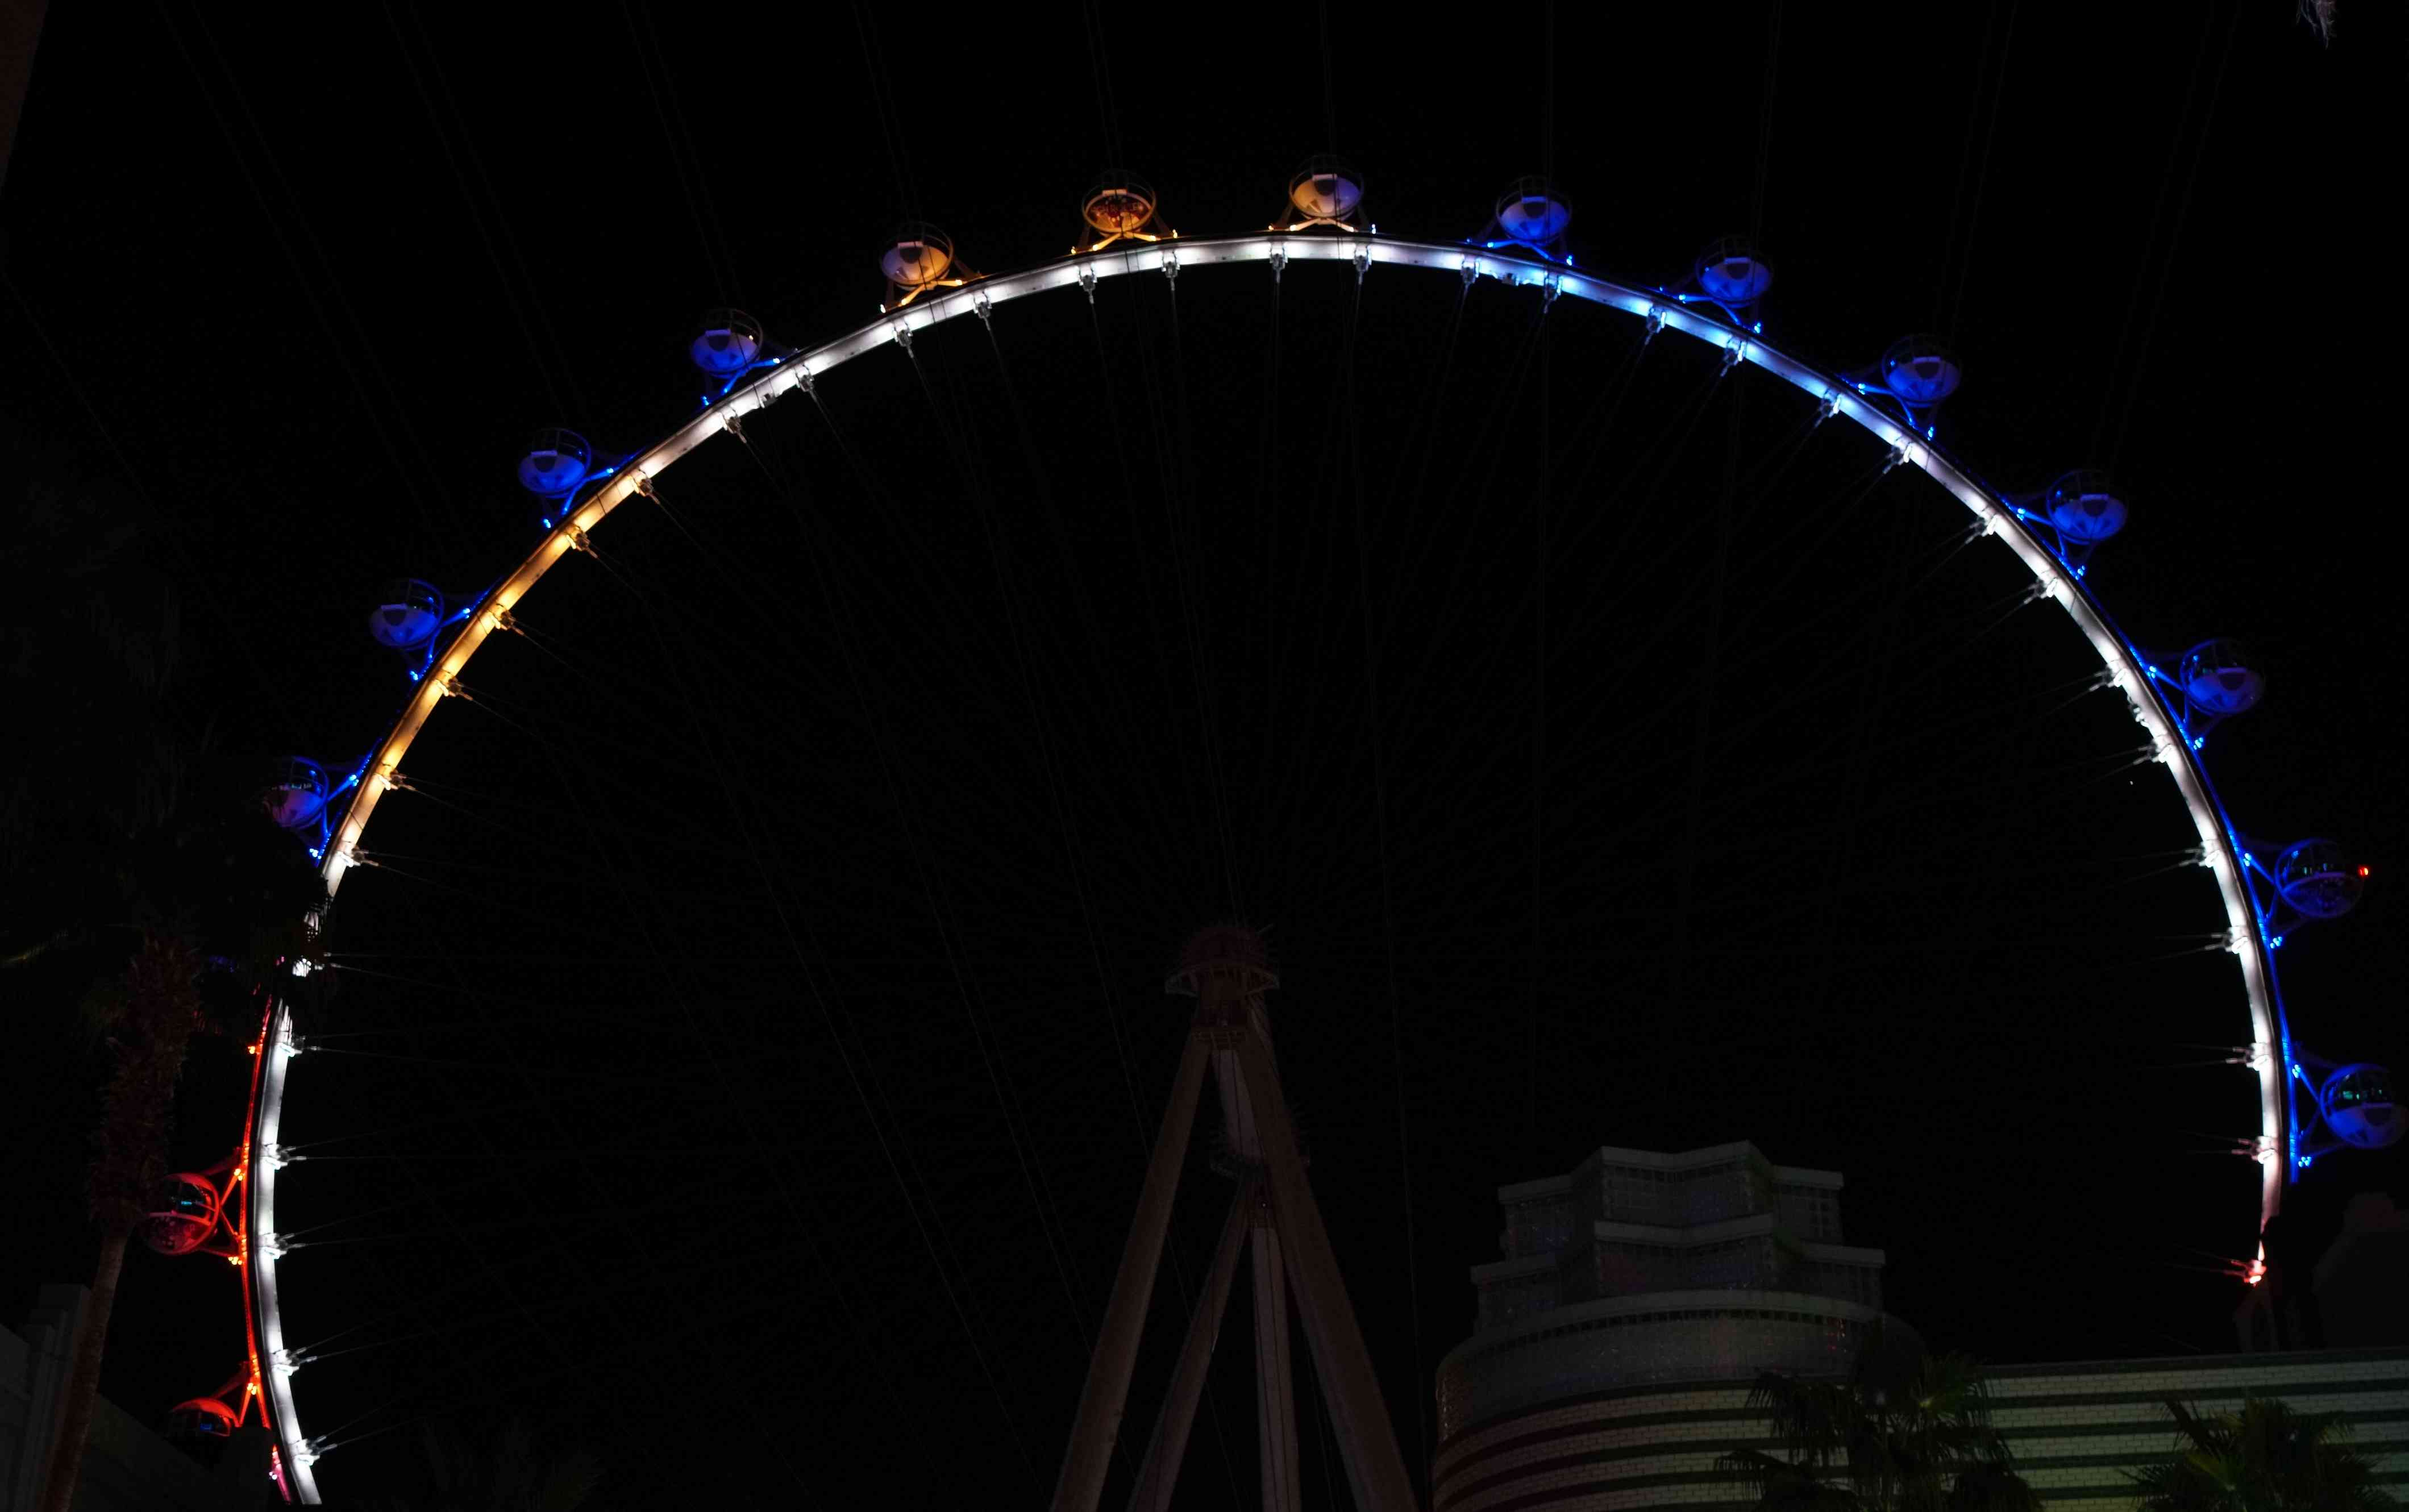 The high roller lit up at night